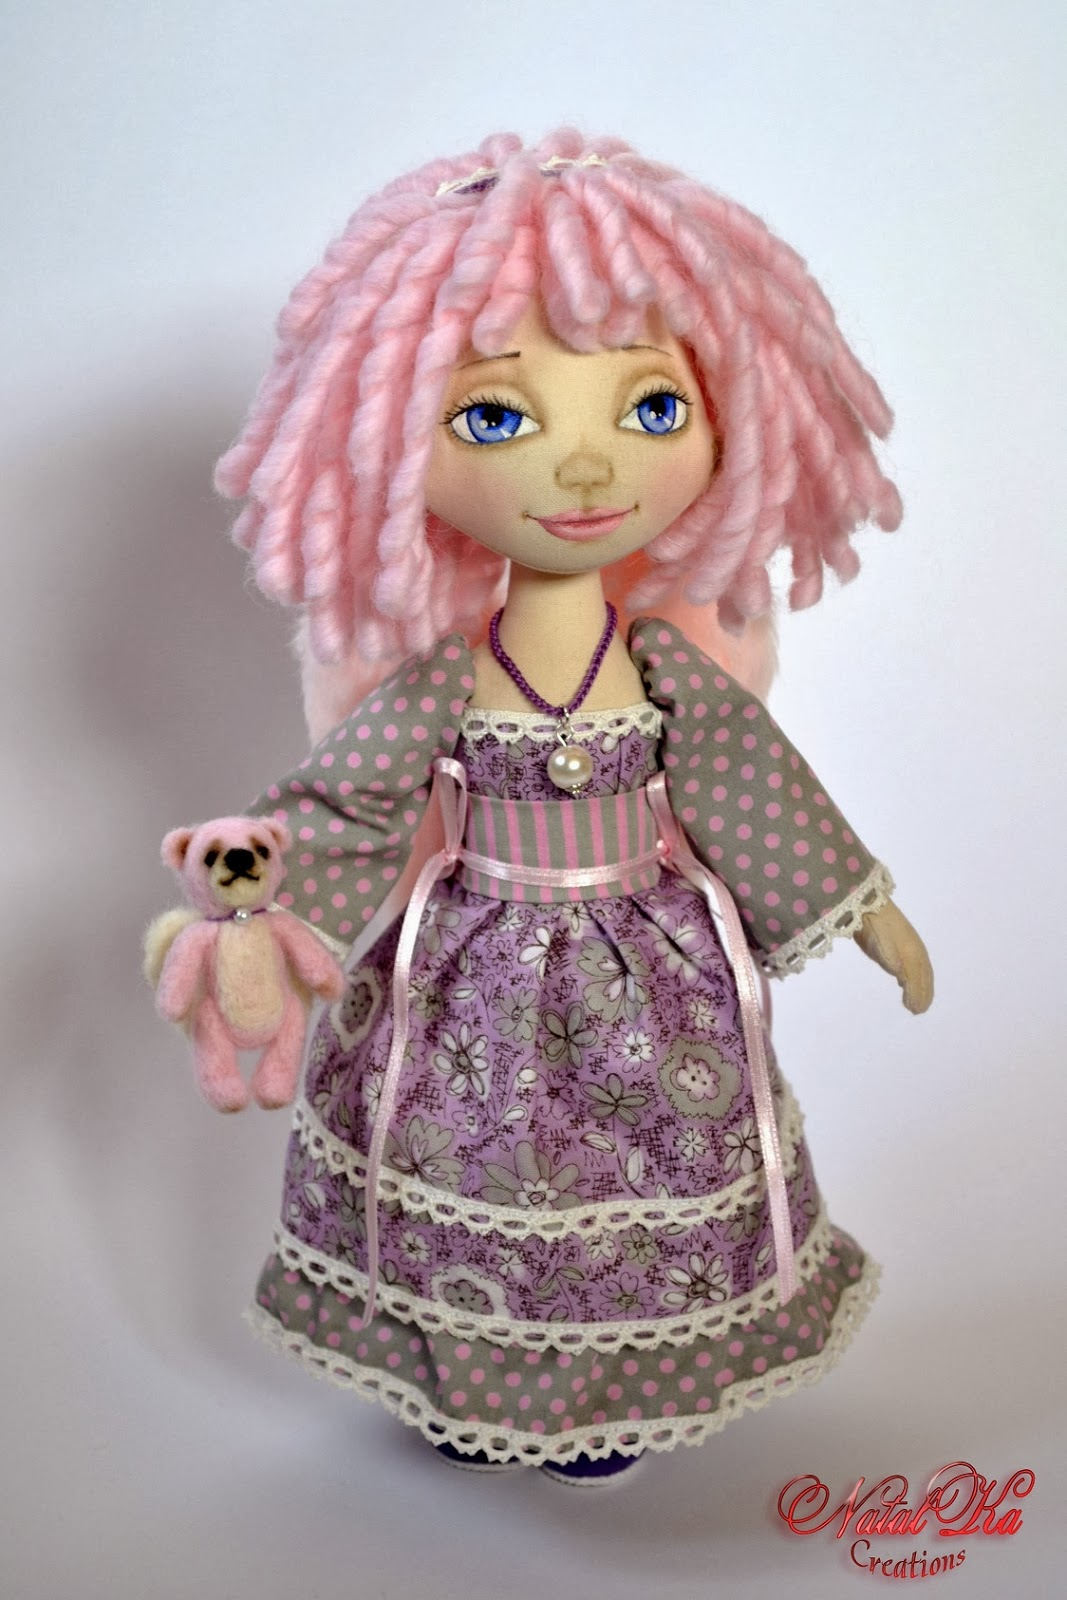 Авторская текстильная кукла от NatalKa Creations. Handgemachte Stoffpuppe von NatalKa Creations. Cloth art doll handmade by NatalKa Creations